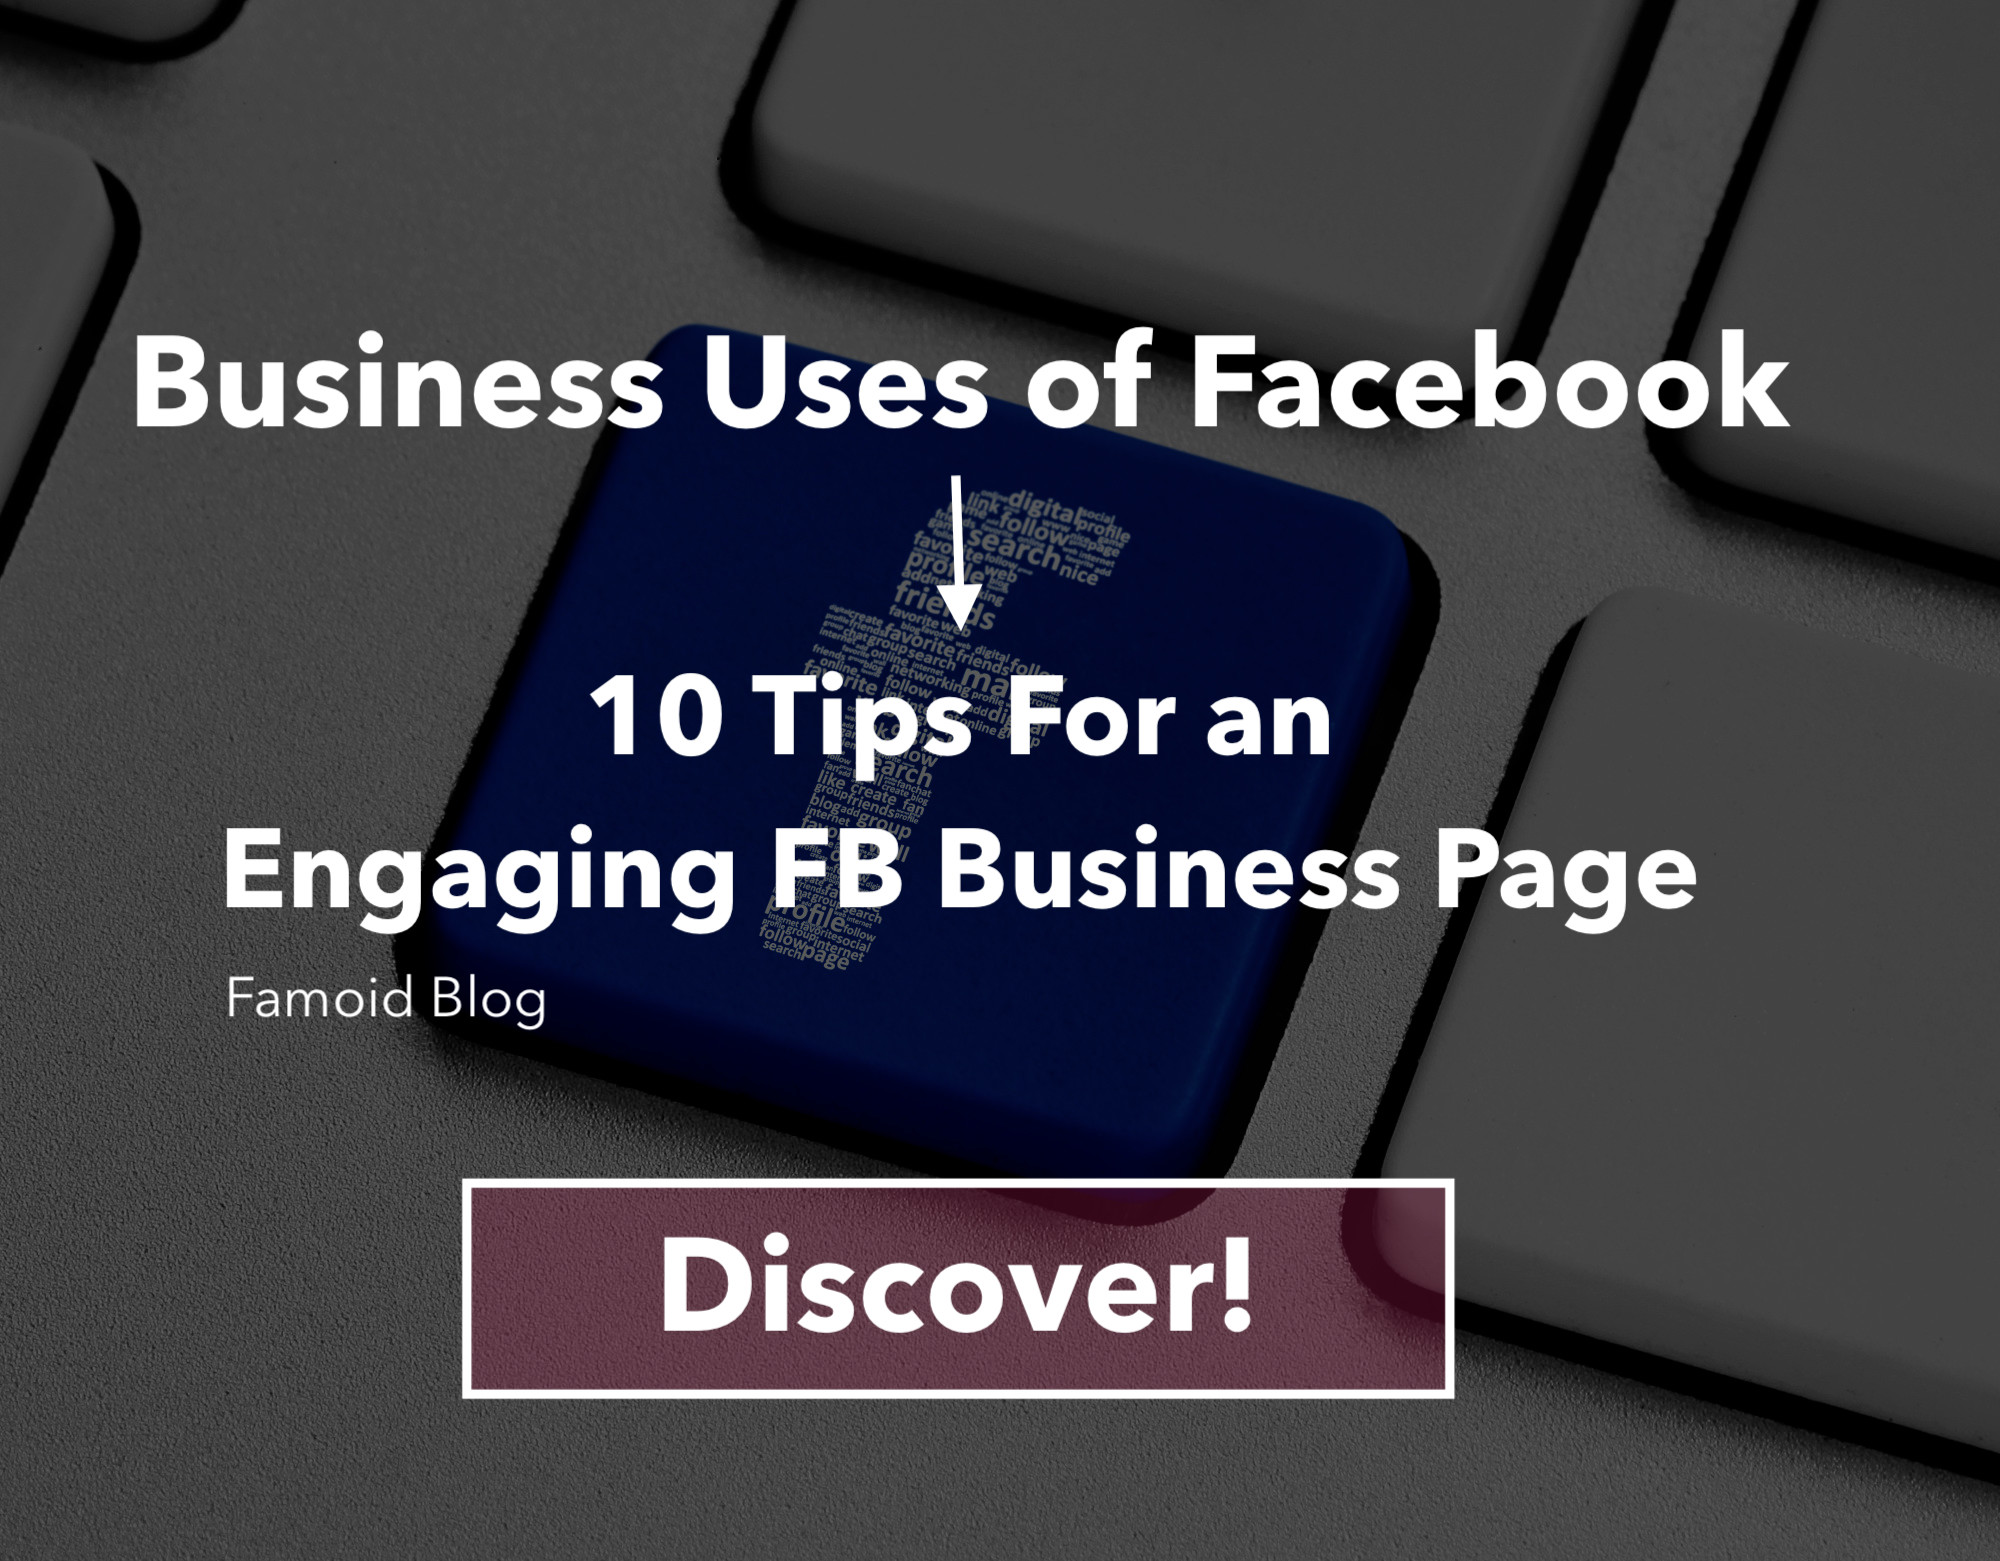 10 Tips For an Engaging FB Business Page - Famoid Blog